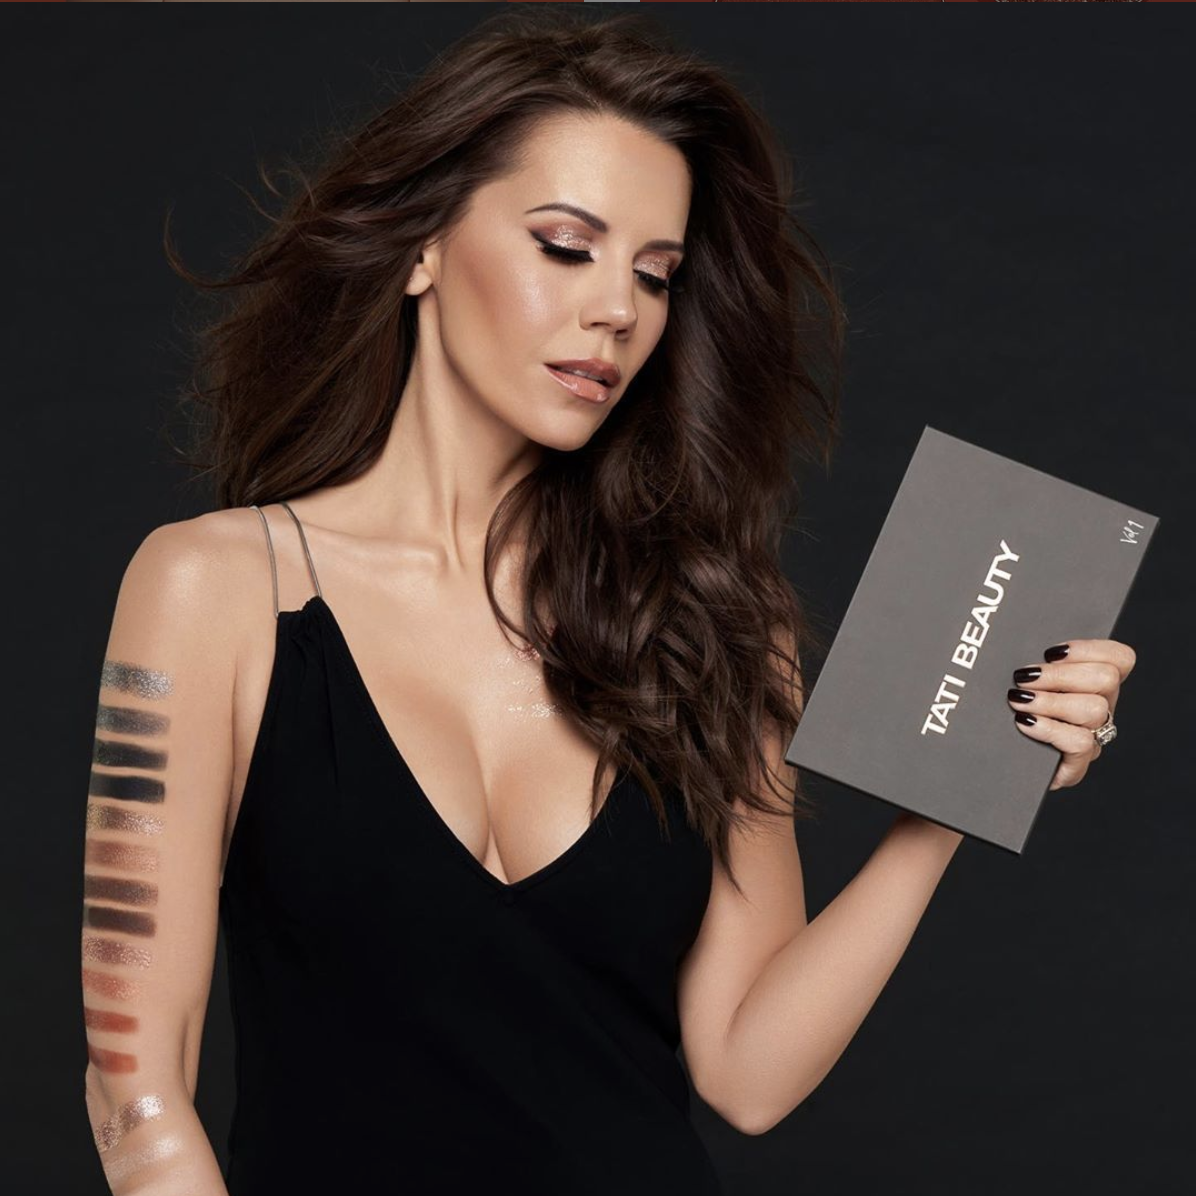 An advertisement for Tati Beauty's Textured Neutrals Vol 1 eyeshadow palette, featuring Tati Westbrook holding the palette with eyeshadow swatches down her arm.